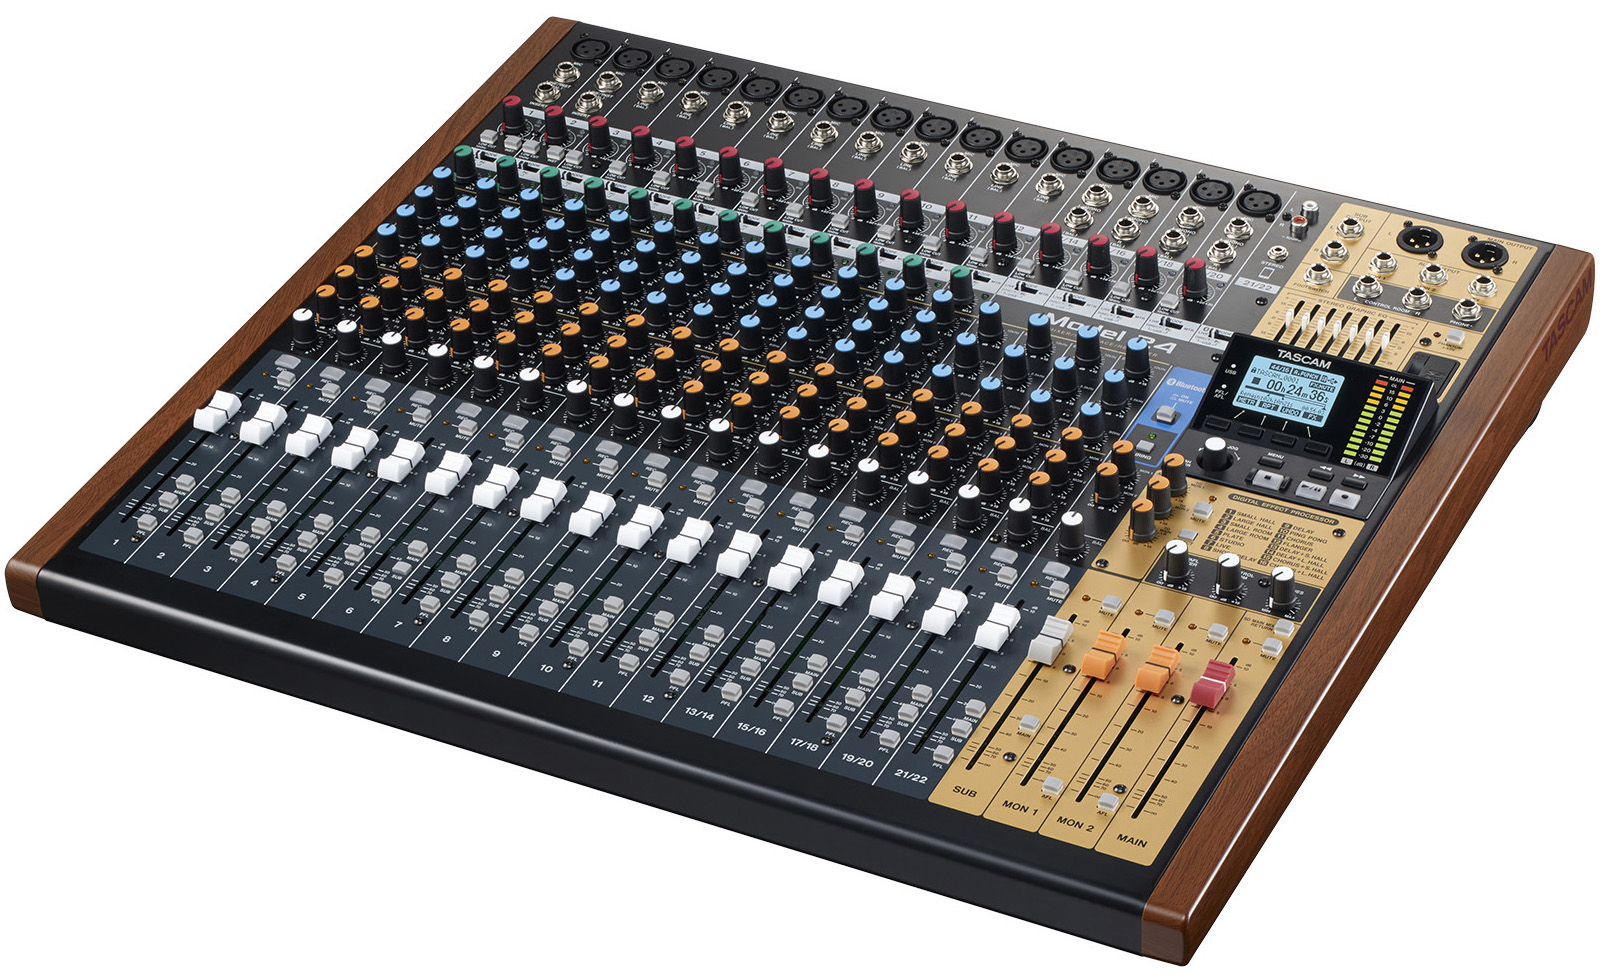 Reexamining an Analog Console in the Digital Age